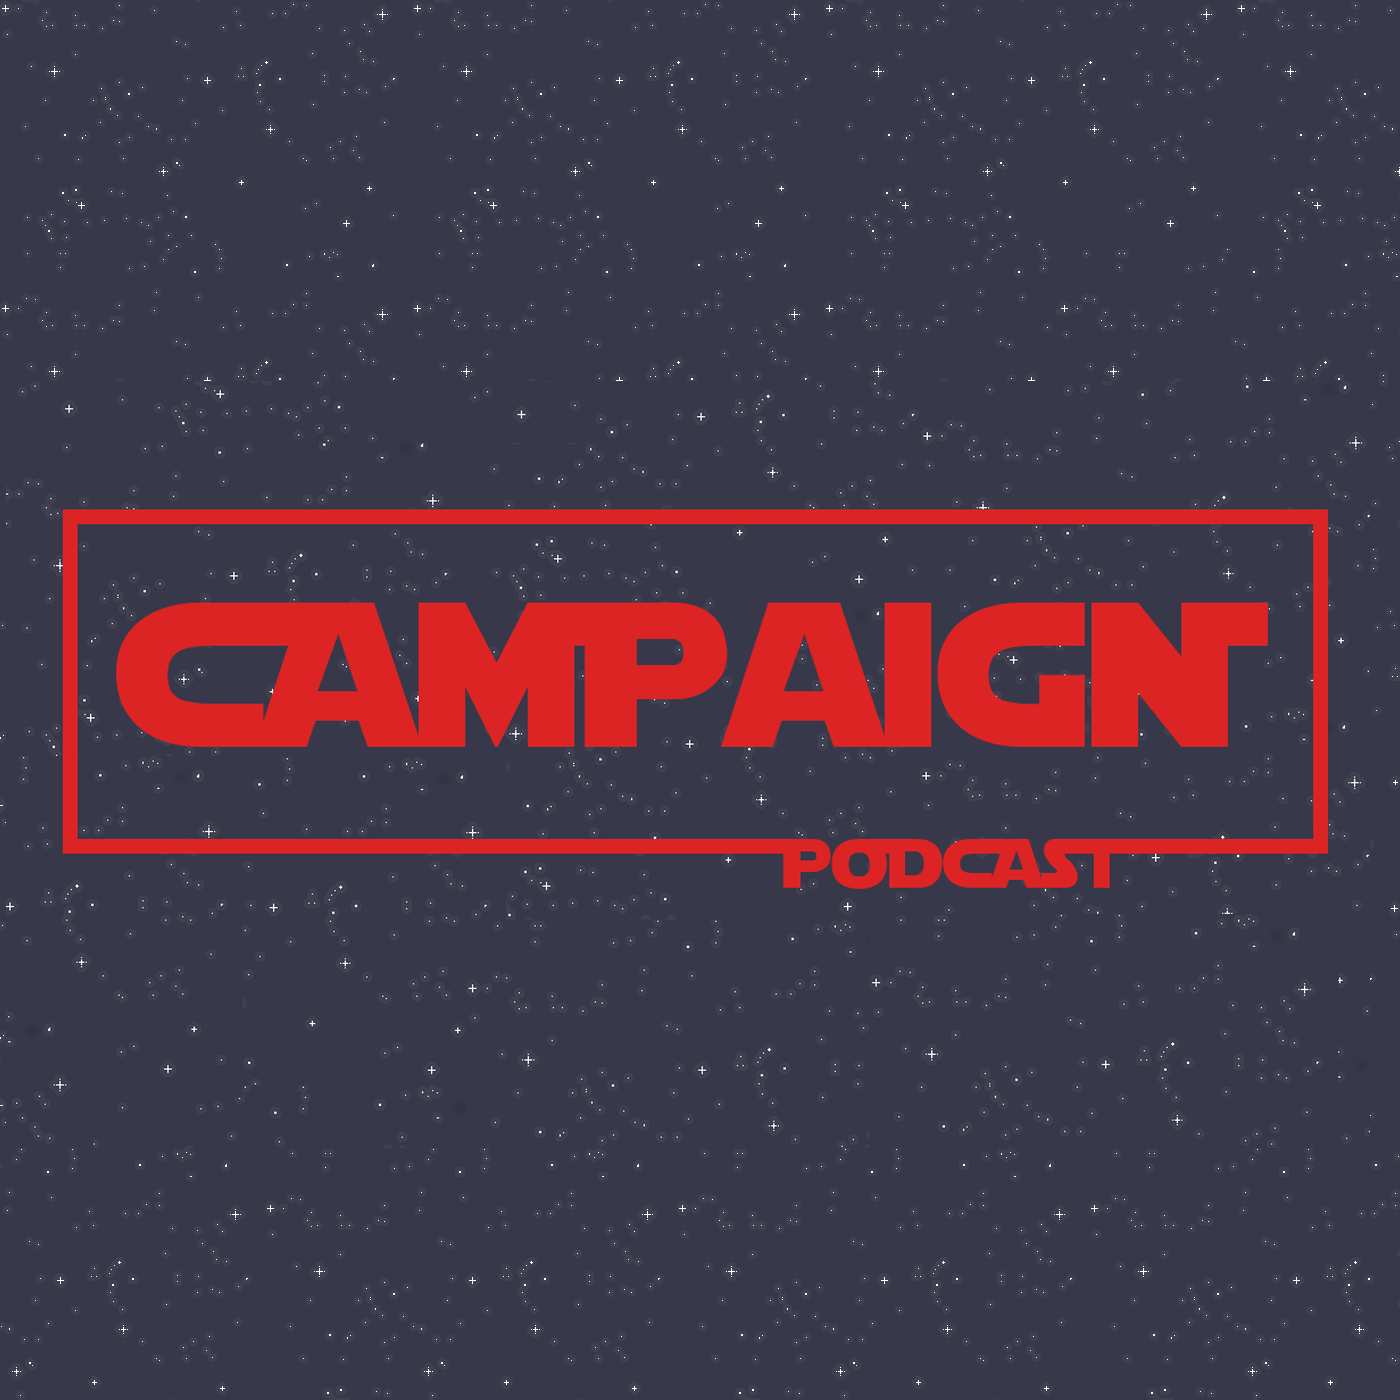 Campaign Podcast logo